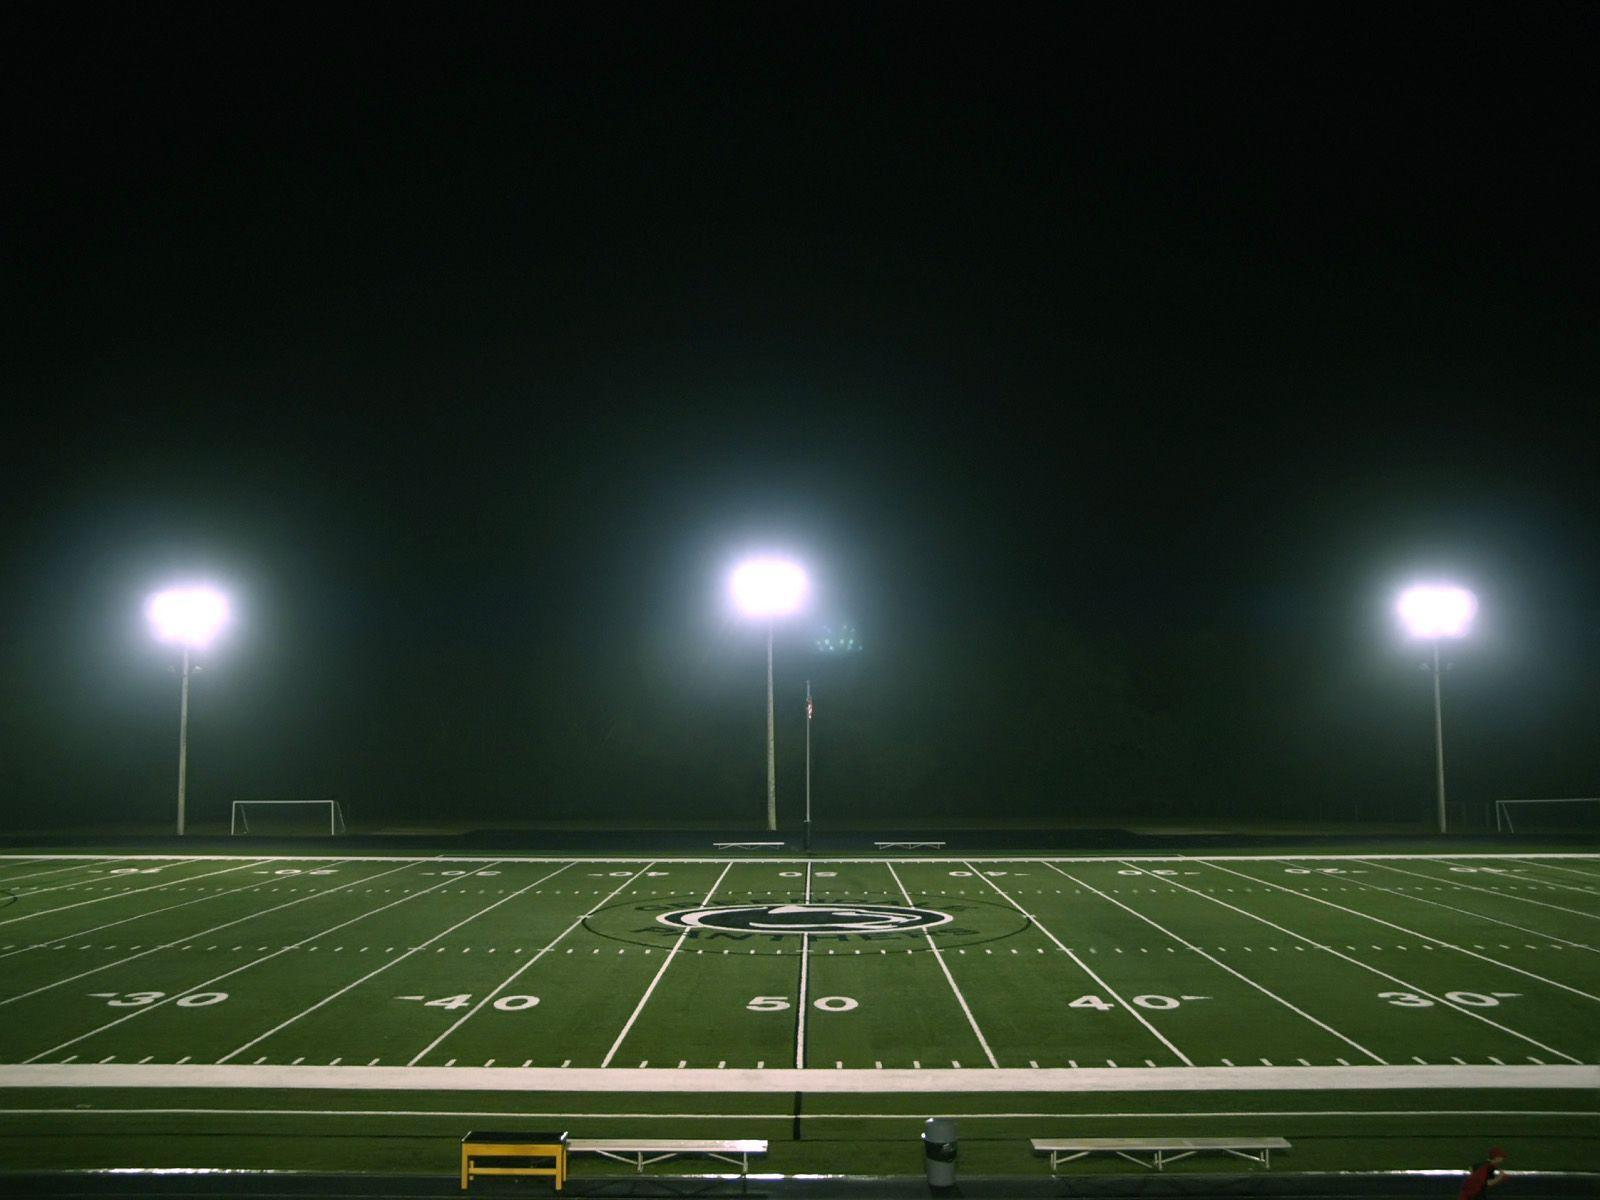 Football Field Wallpapers - Wallpaper Cave